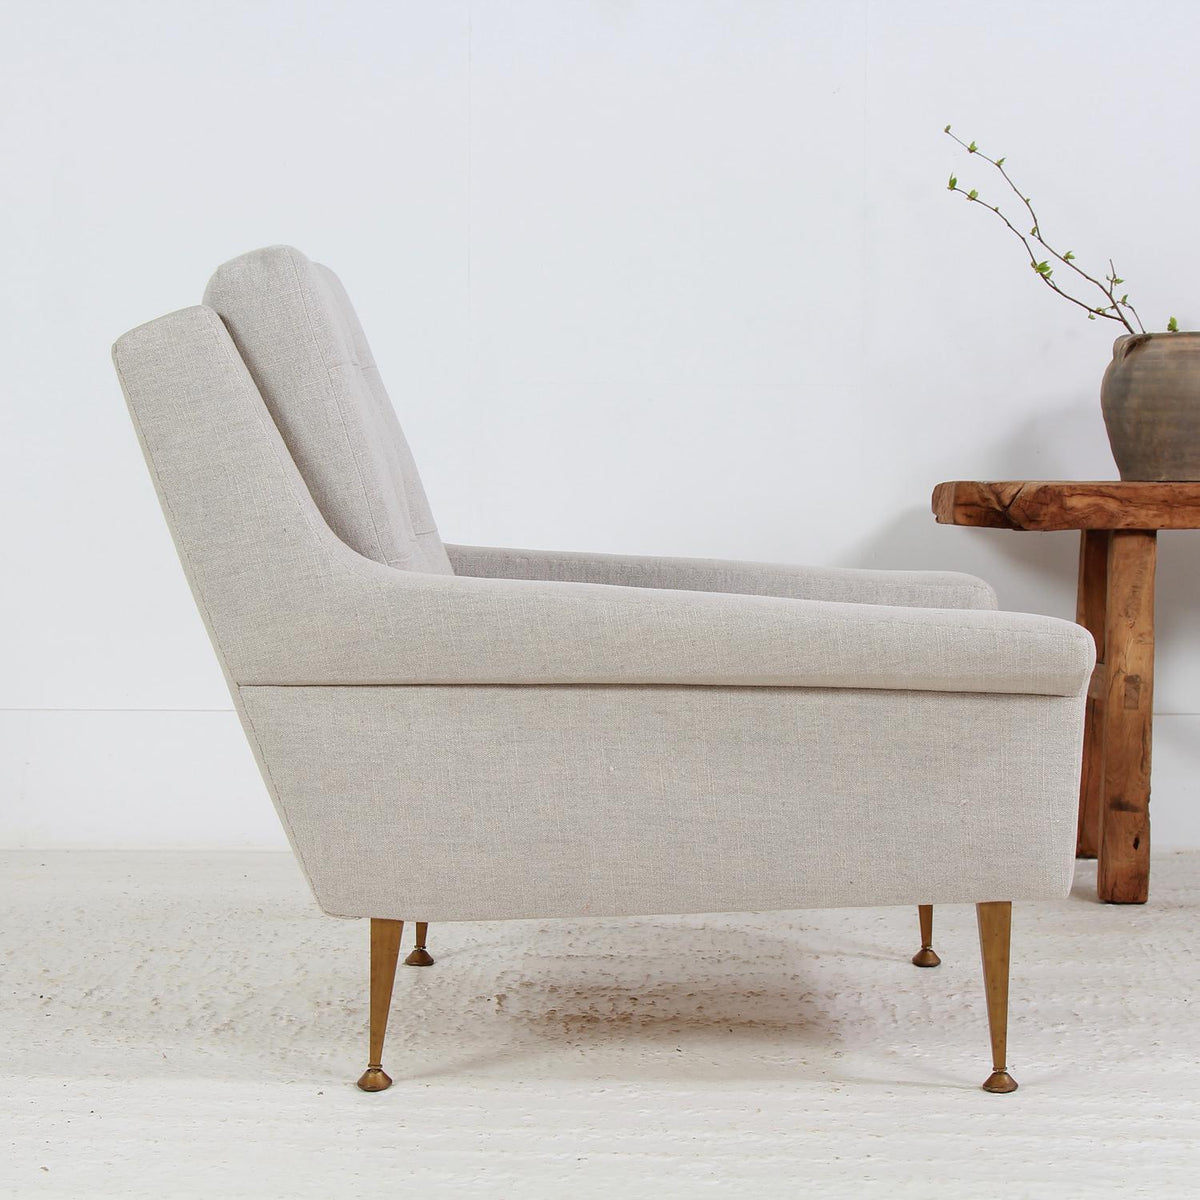 Stylish Italian Midcentury 1950s Lounge Chair